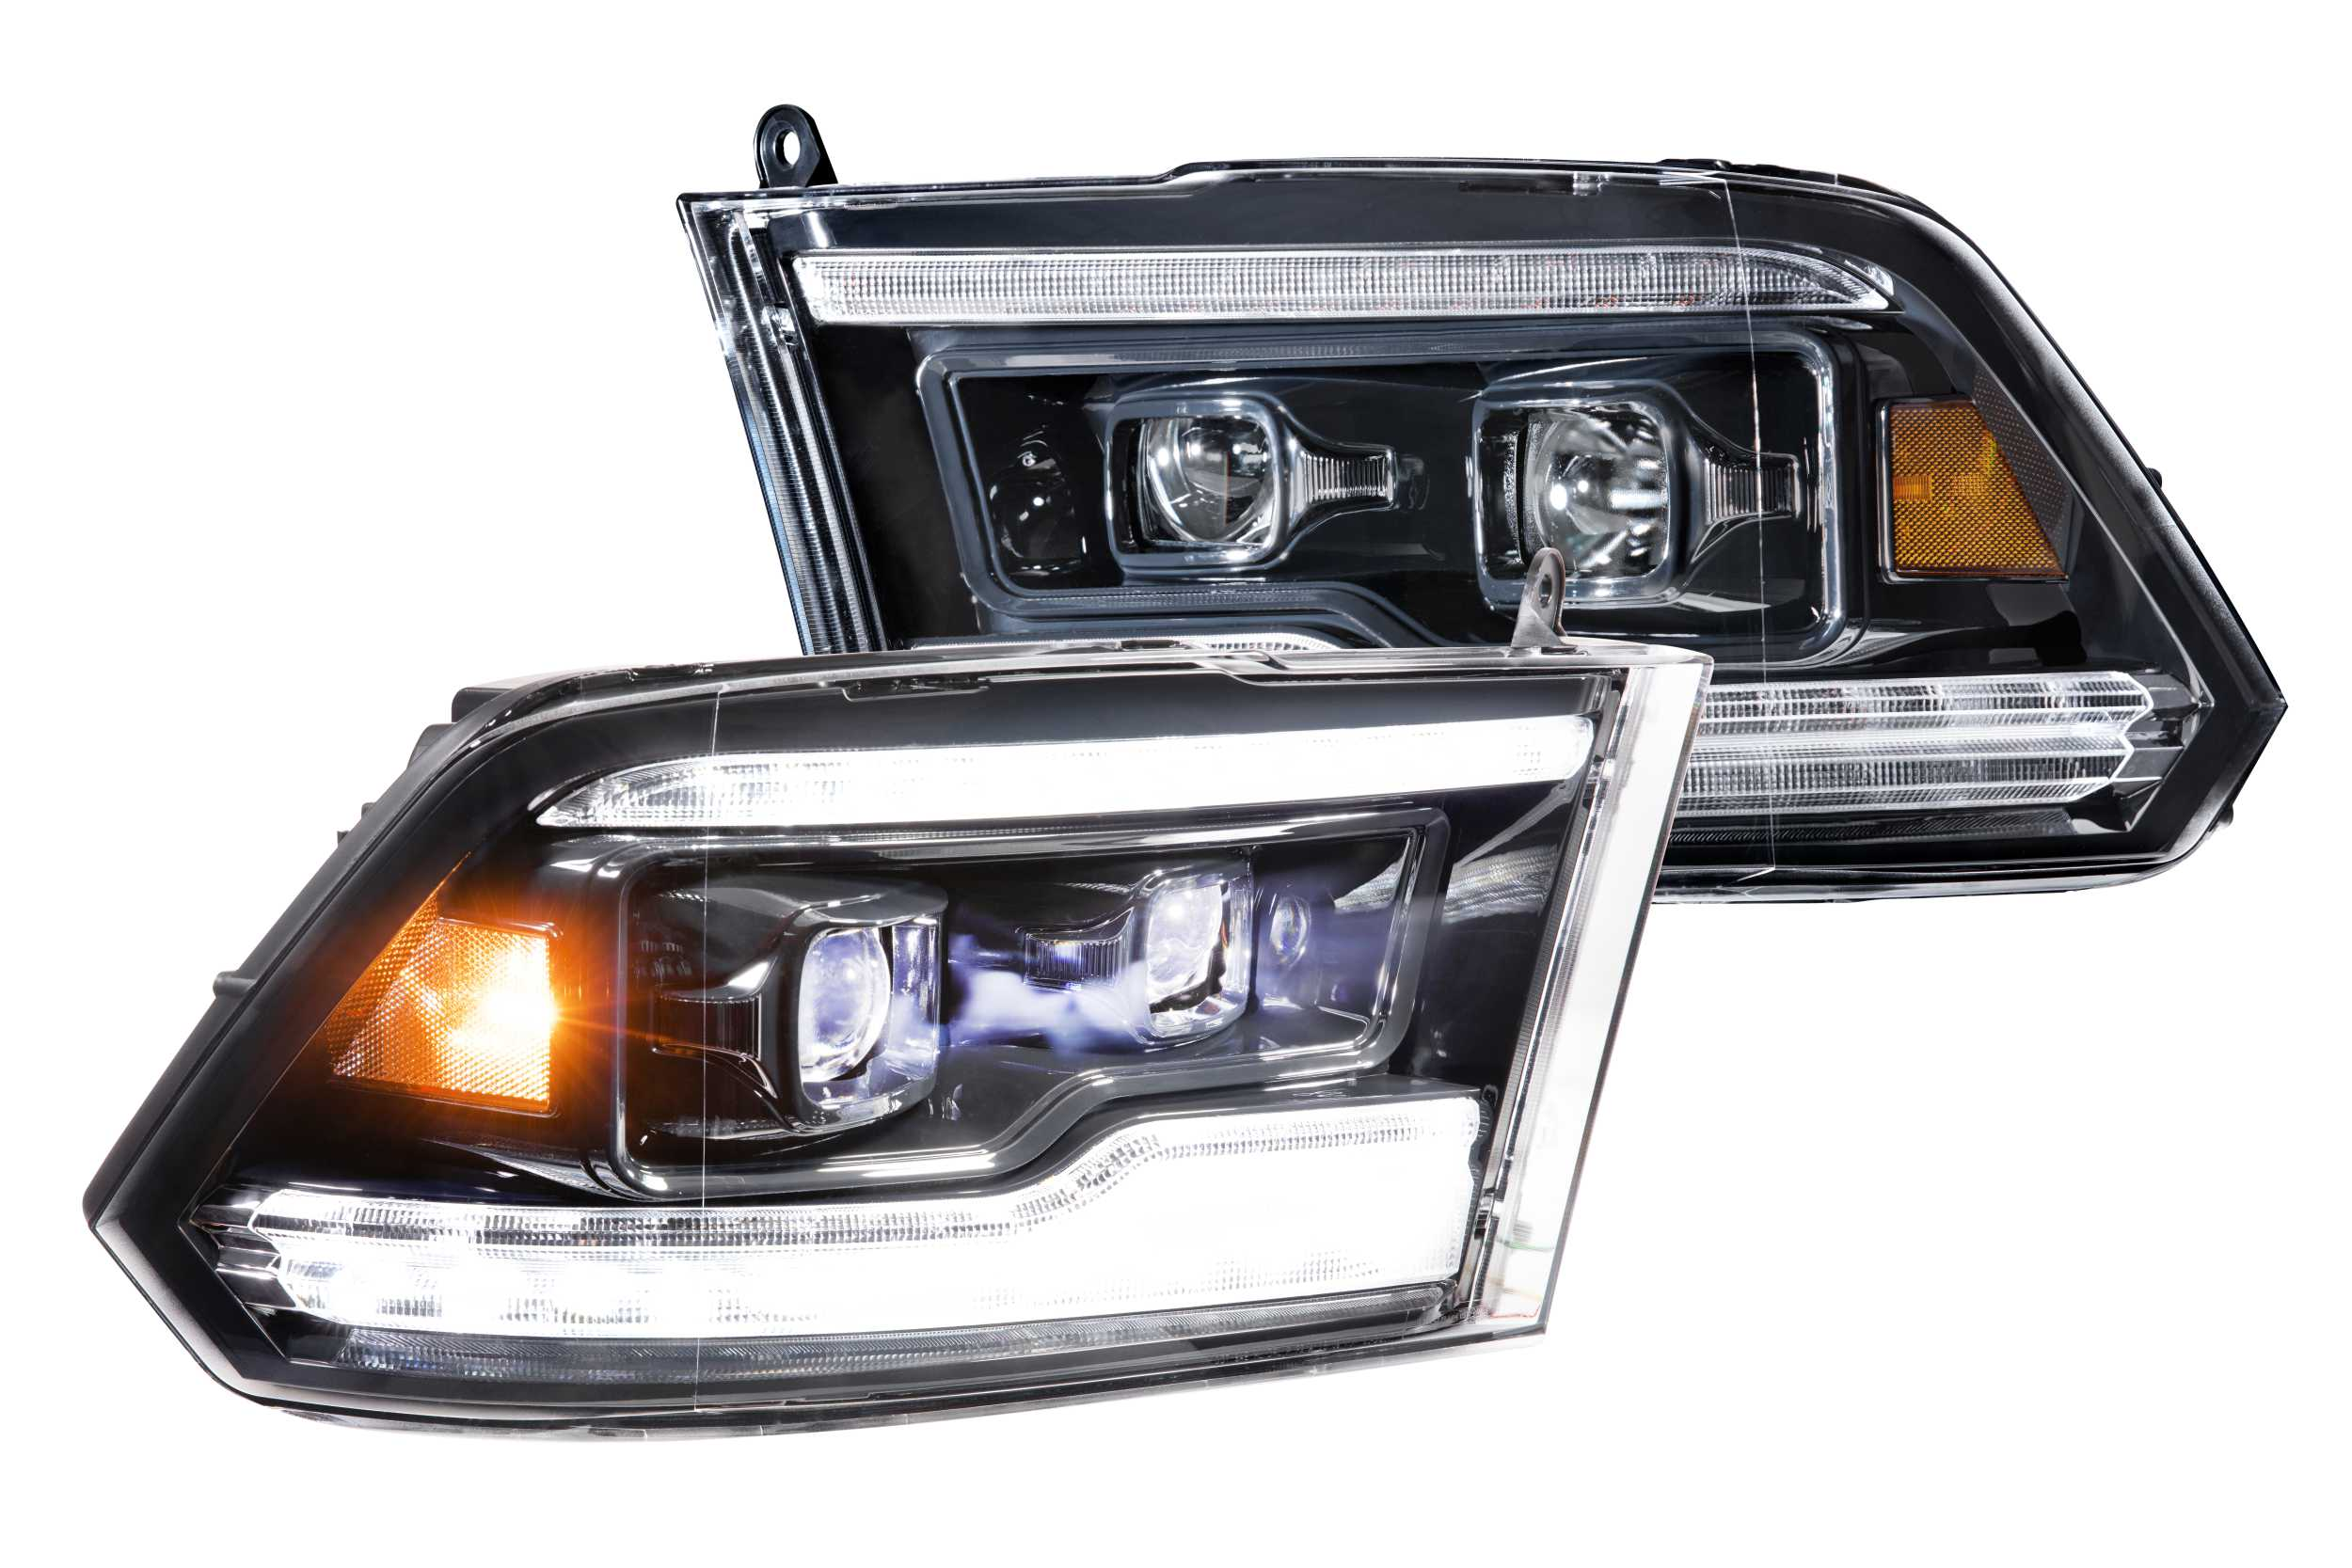 LED Conversion kit Fits Ram Classic 2016-2018 with Projector Headlamps Low Beam